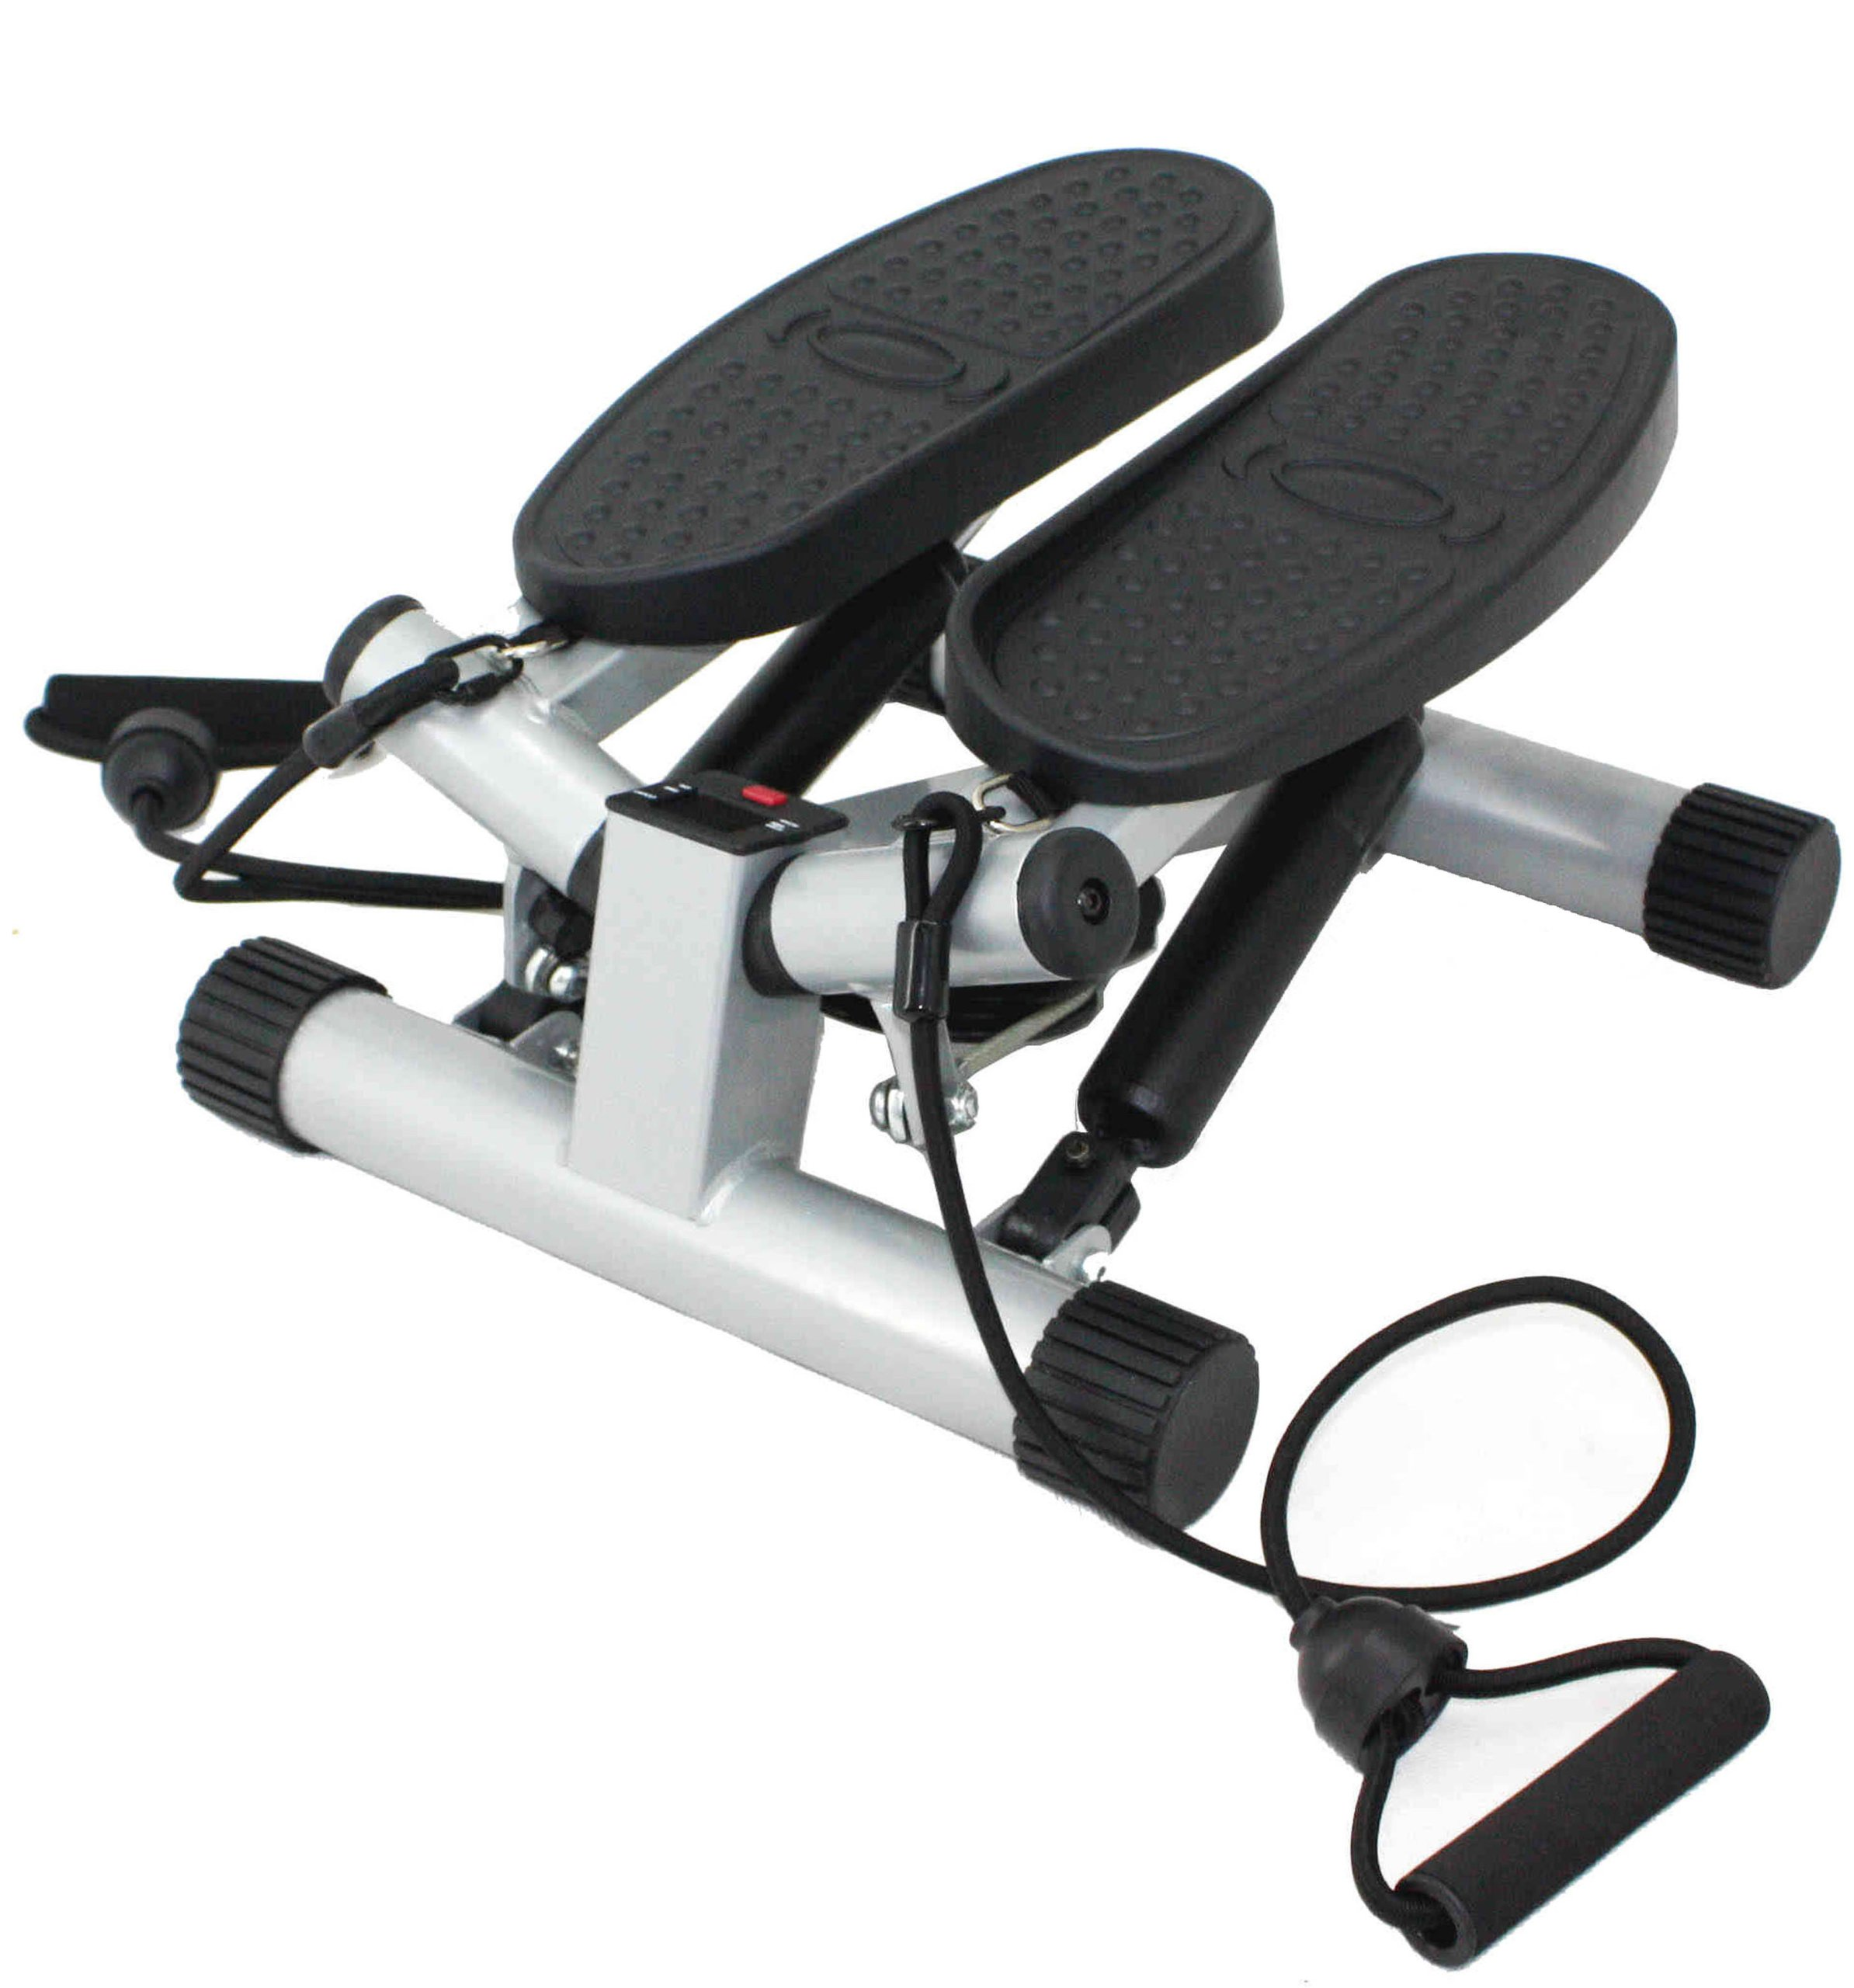 Sunny Health & Fitness Mini Stepper Stair Stepper Exercise Equipment with Resistance Bands and Twisting Action - NO. 068